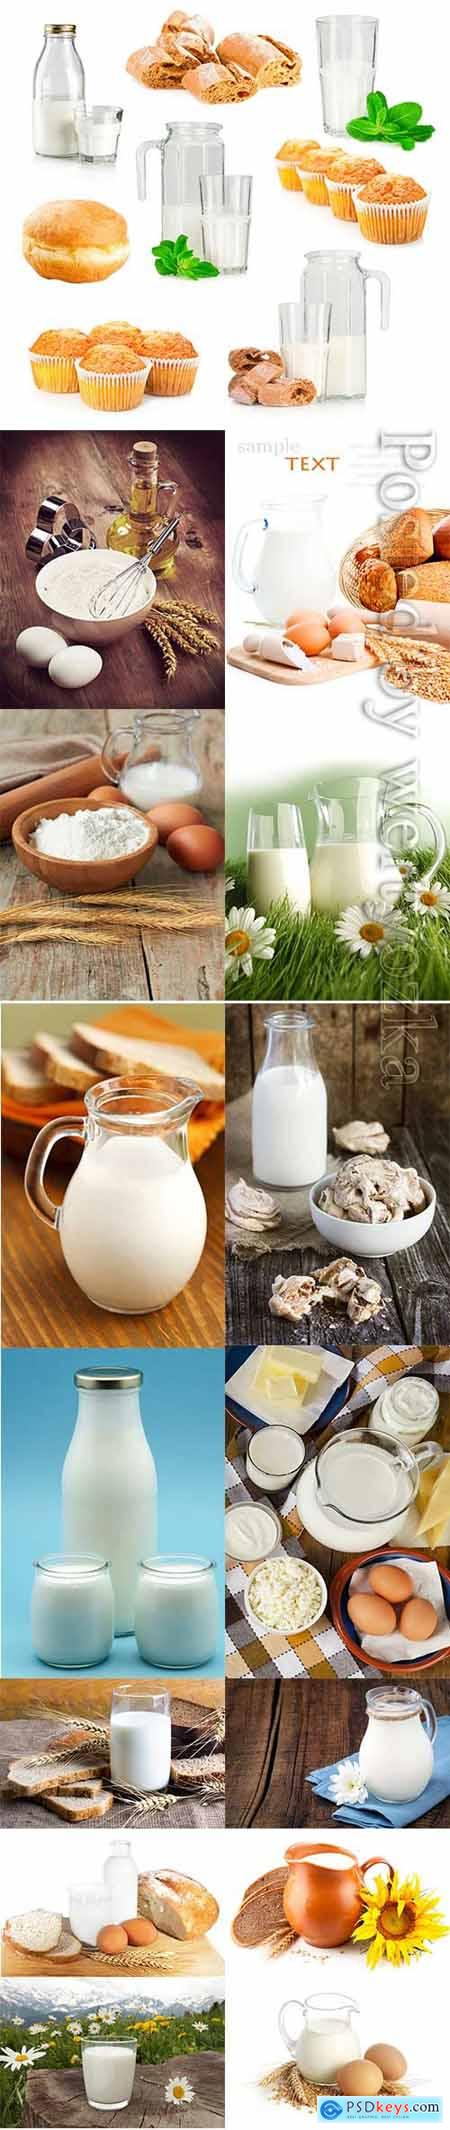 Milk and dairy products stock photo